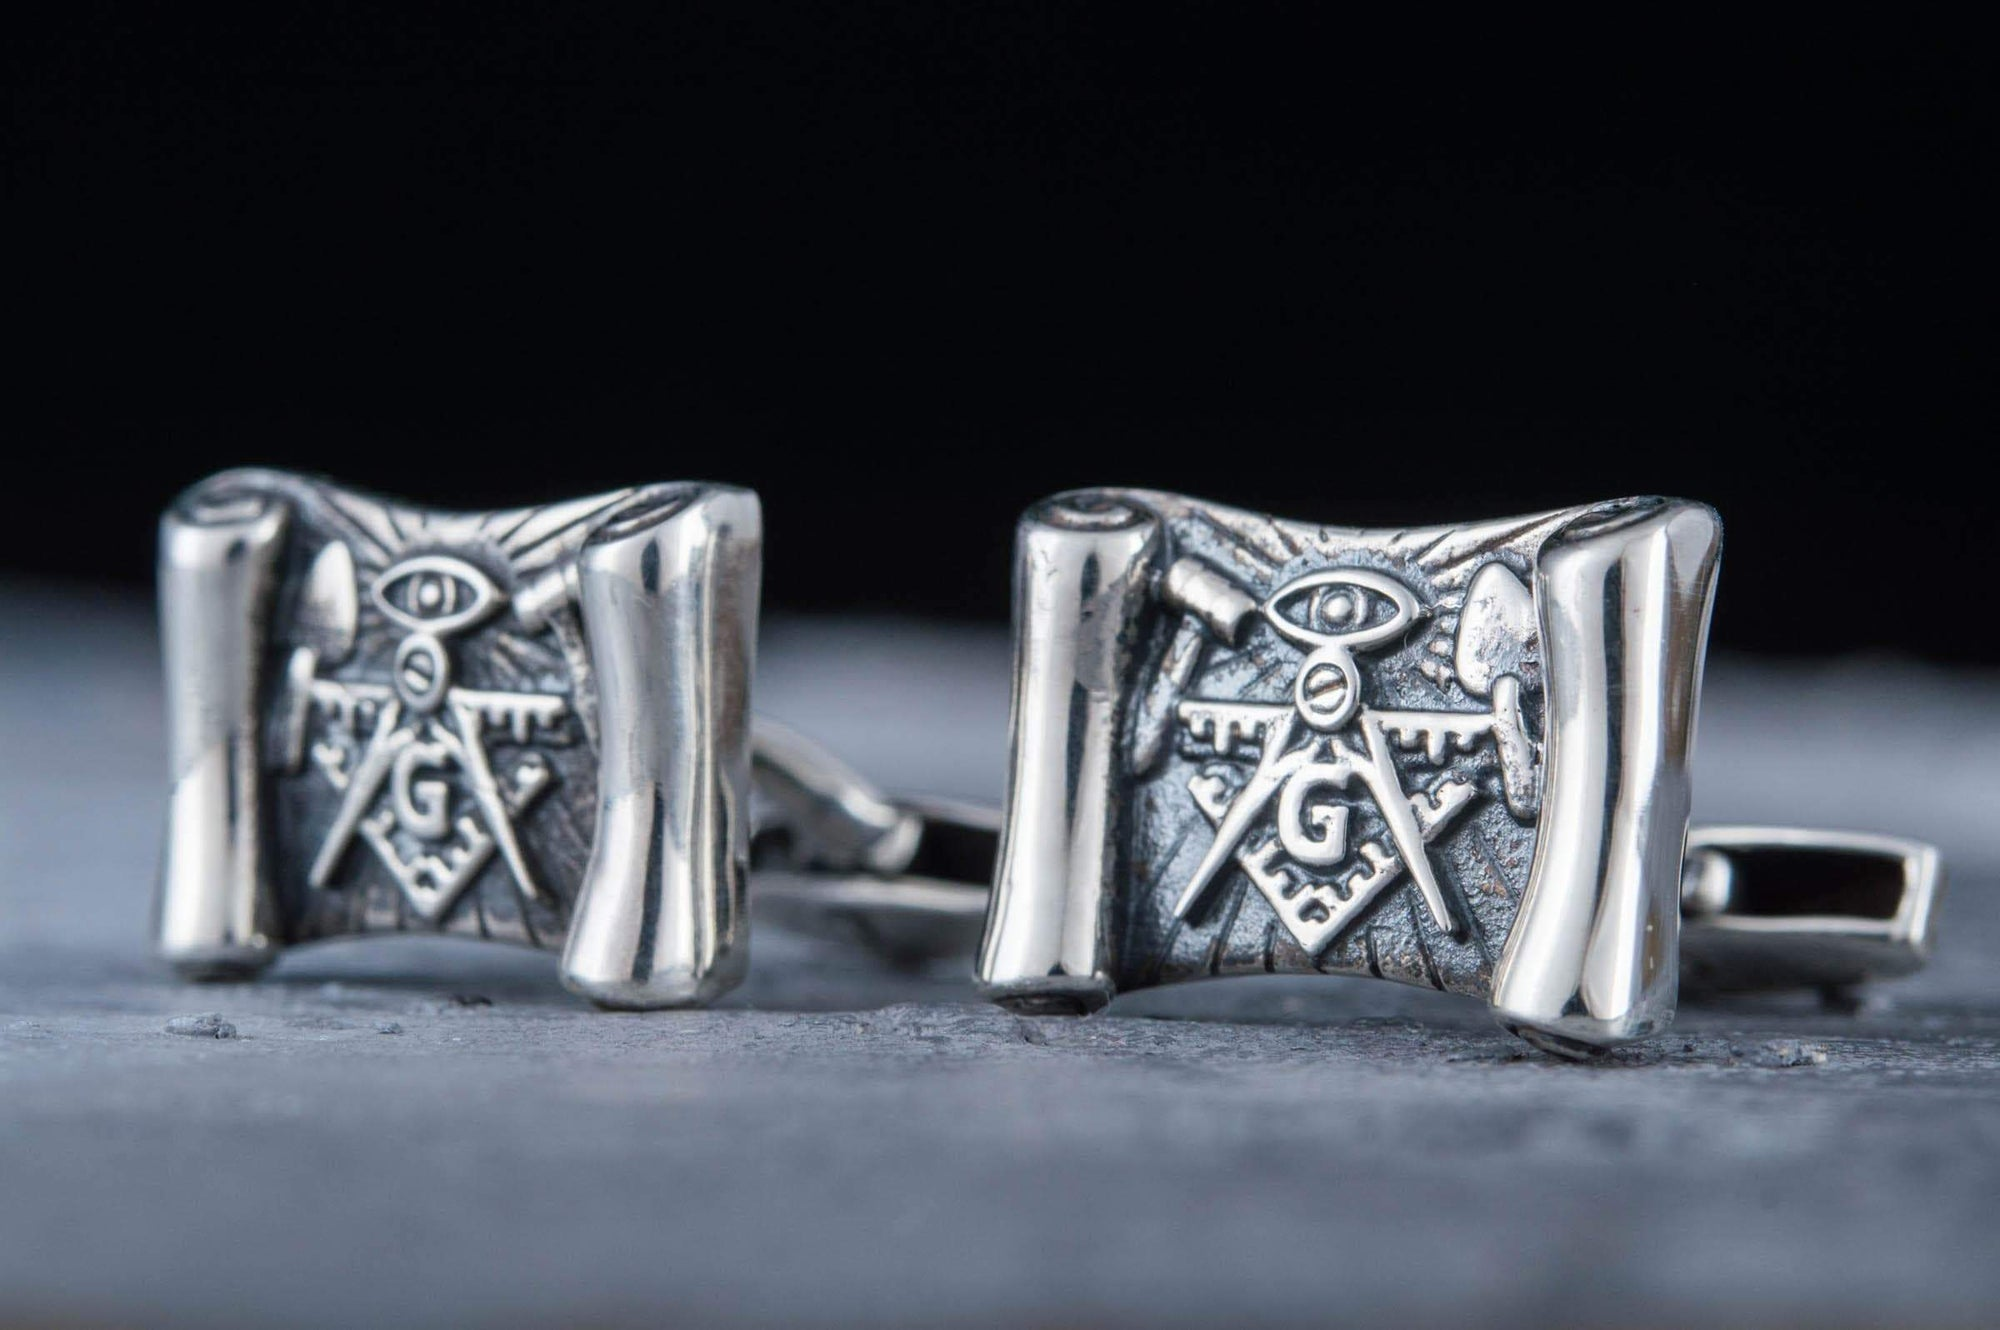 Cufflinks Freemason Scoll Sterling Silver Cufflinks with Masonic Symbols Ancient Treasures Ancientreasures Viking Odin Thor Mjolnir Celtic Ancient Egypt Norse Norse Mythology